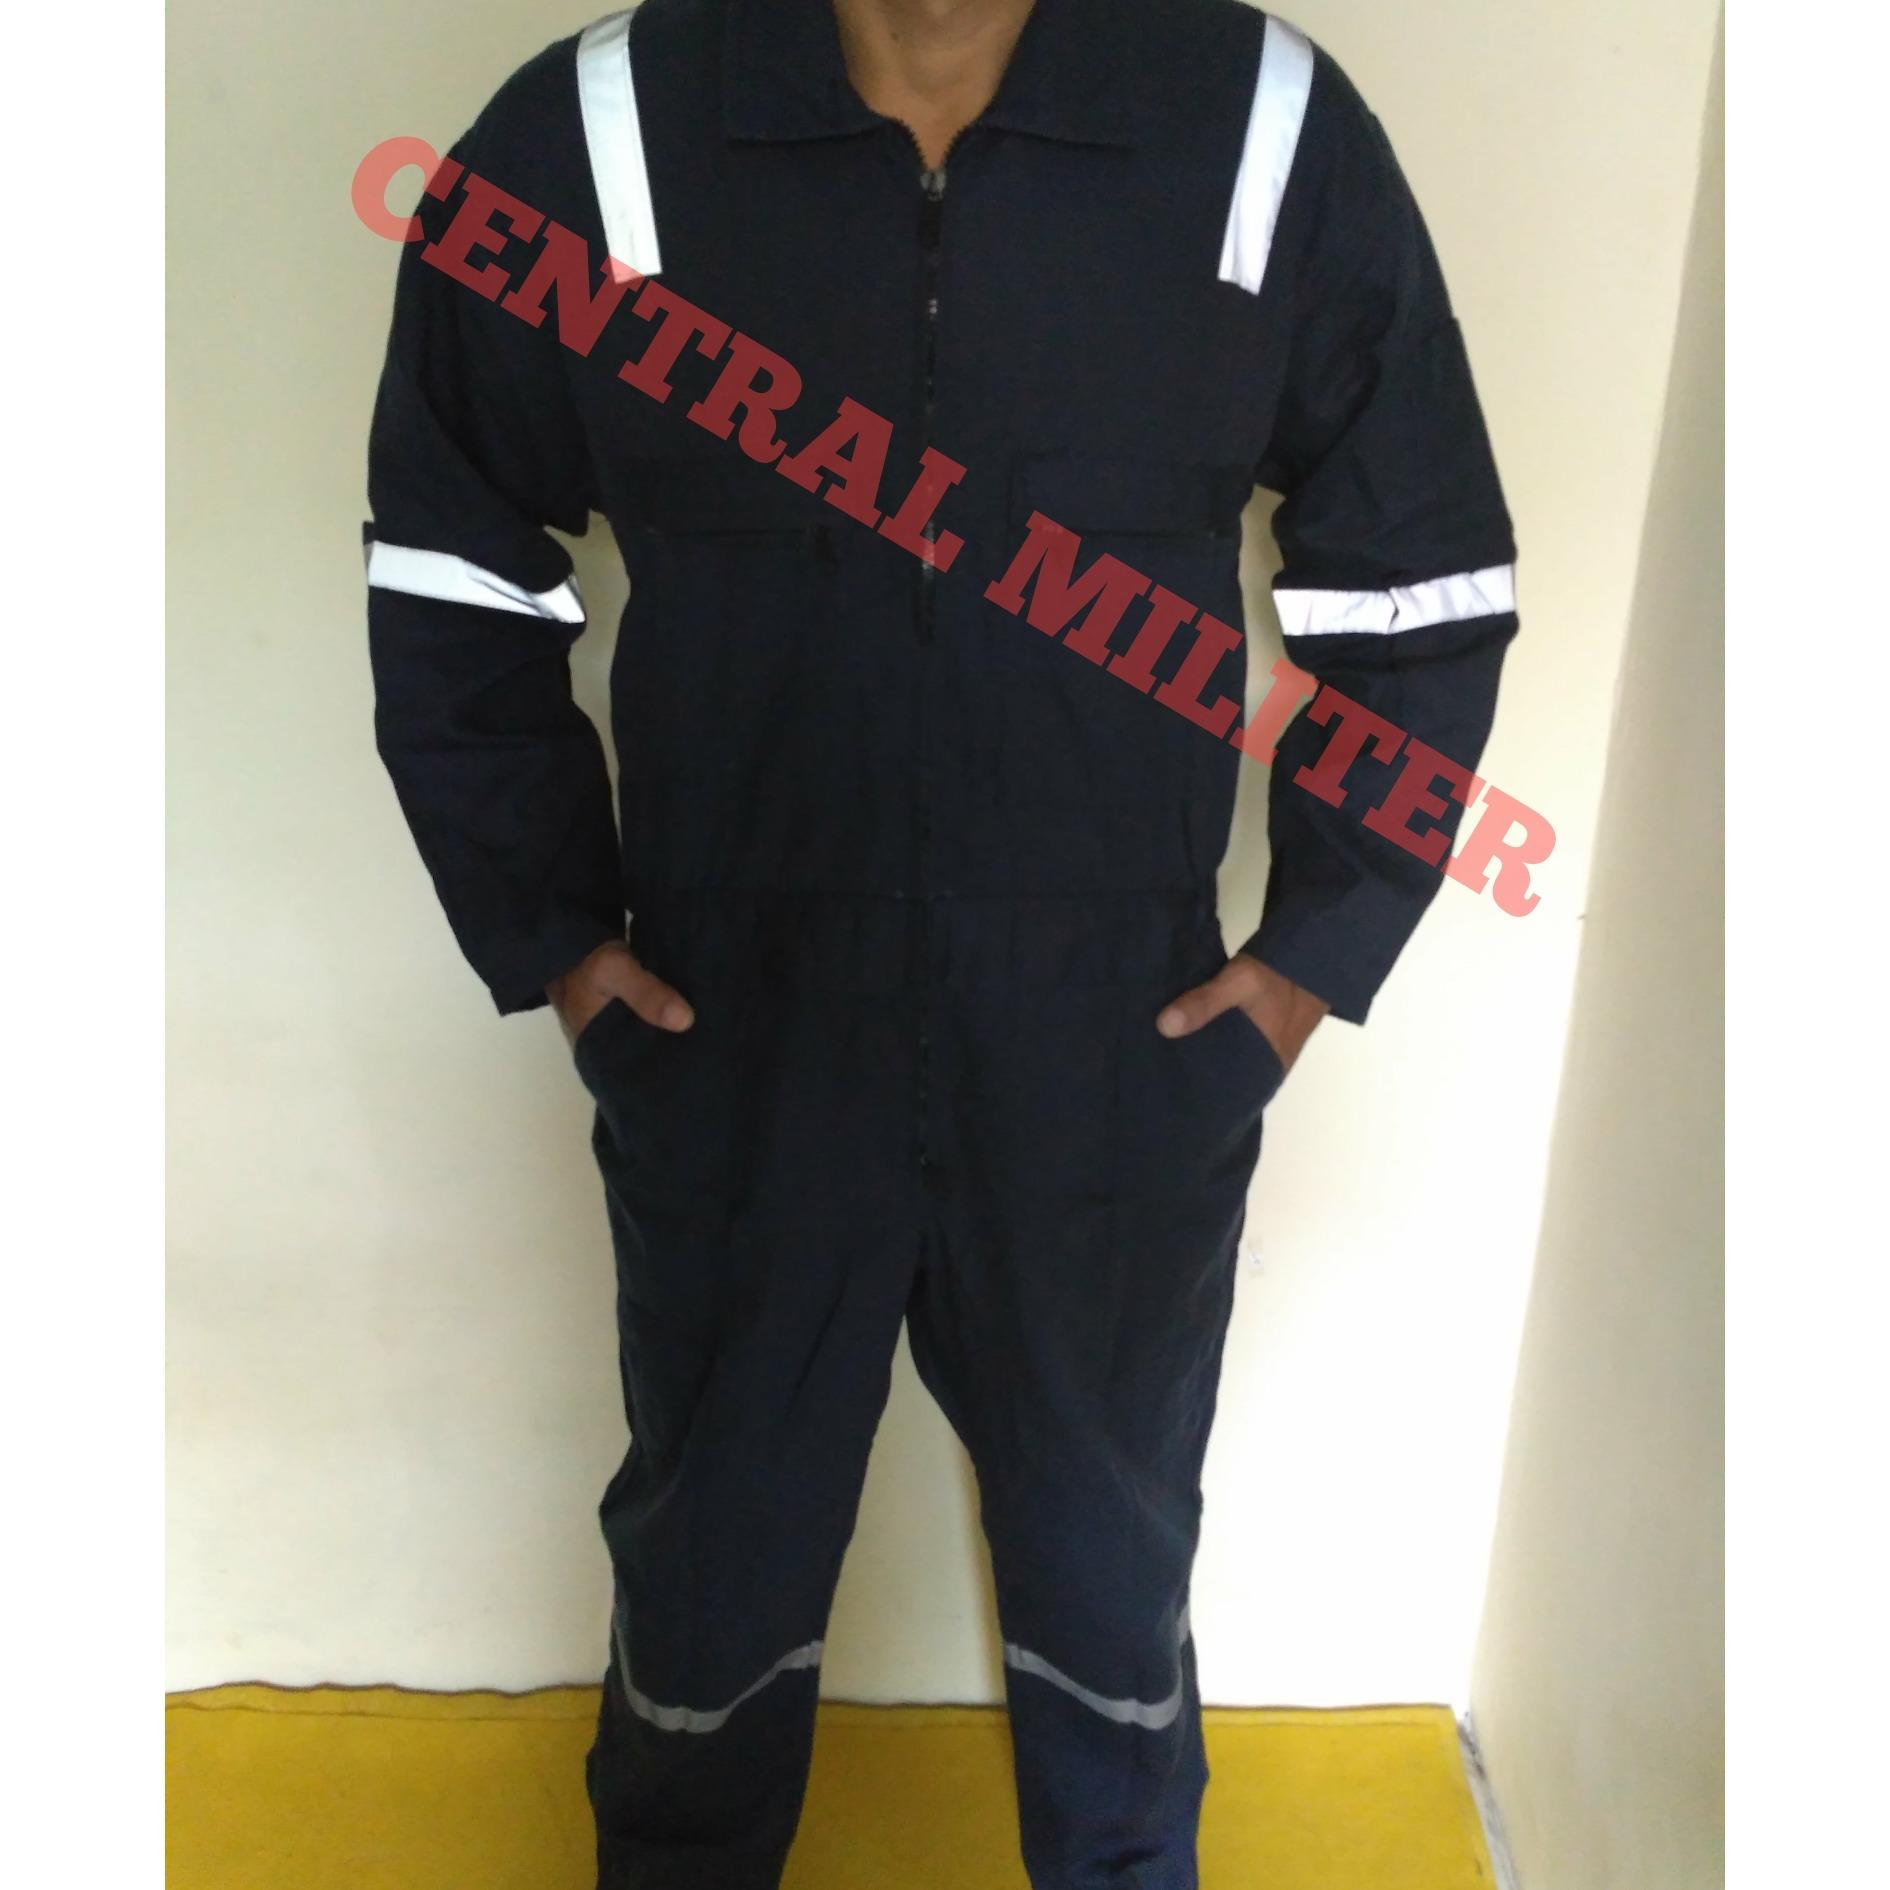 Katelpak Biru Dongker Scotlight/ Wearpack/ Coverall